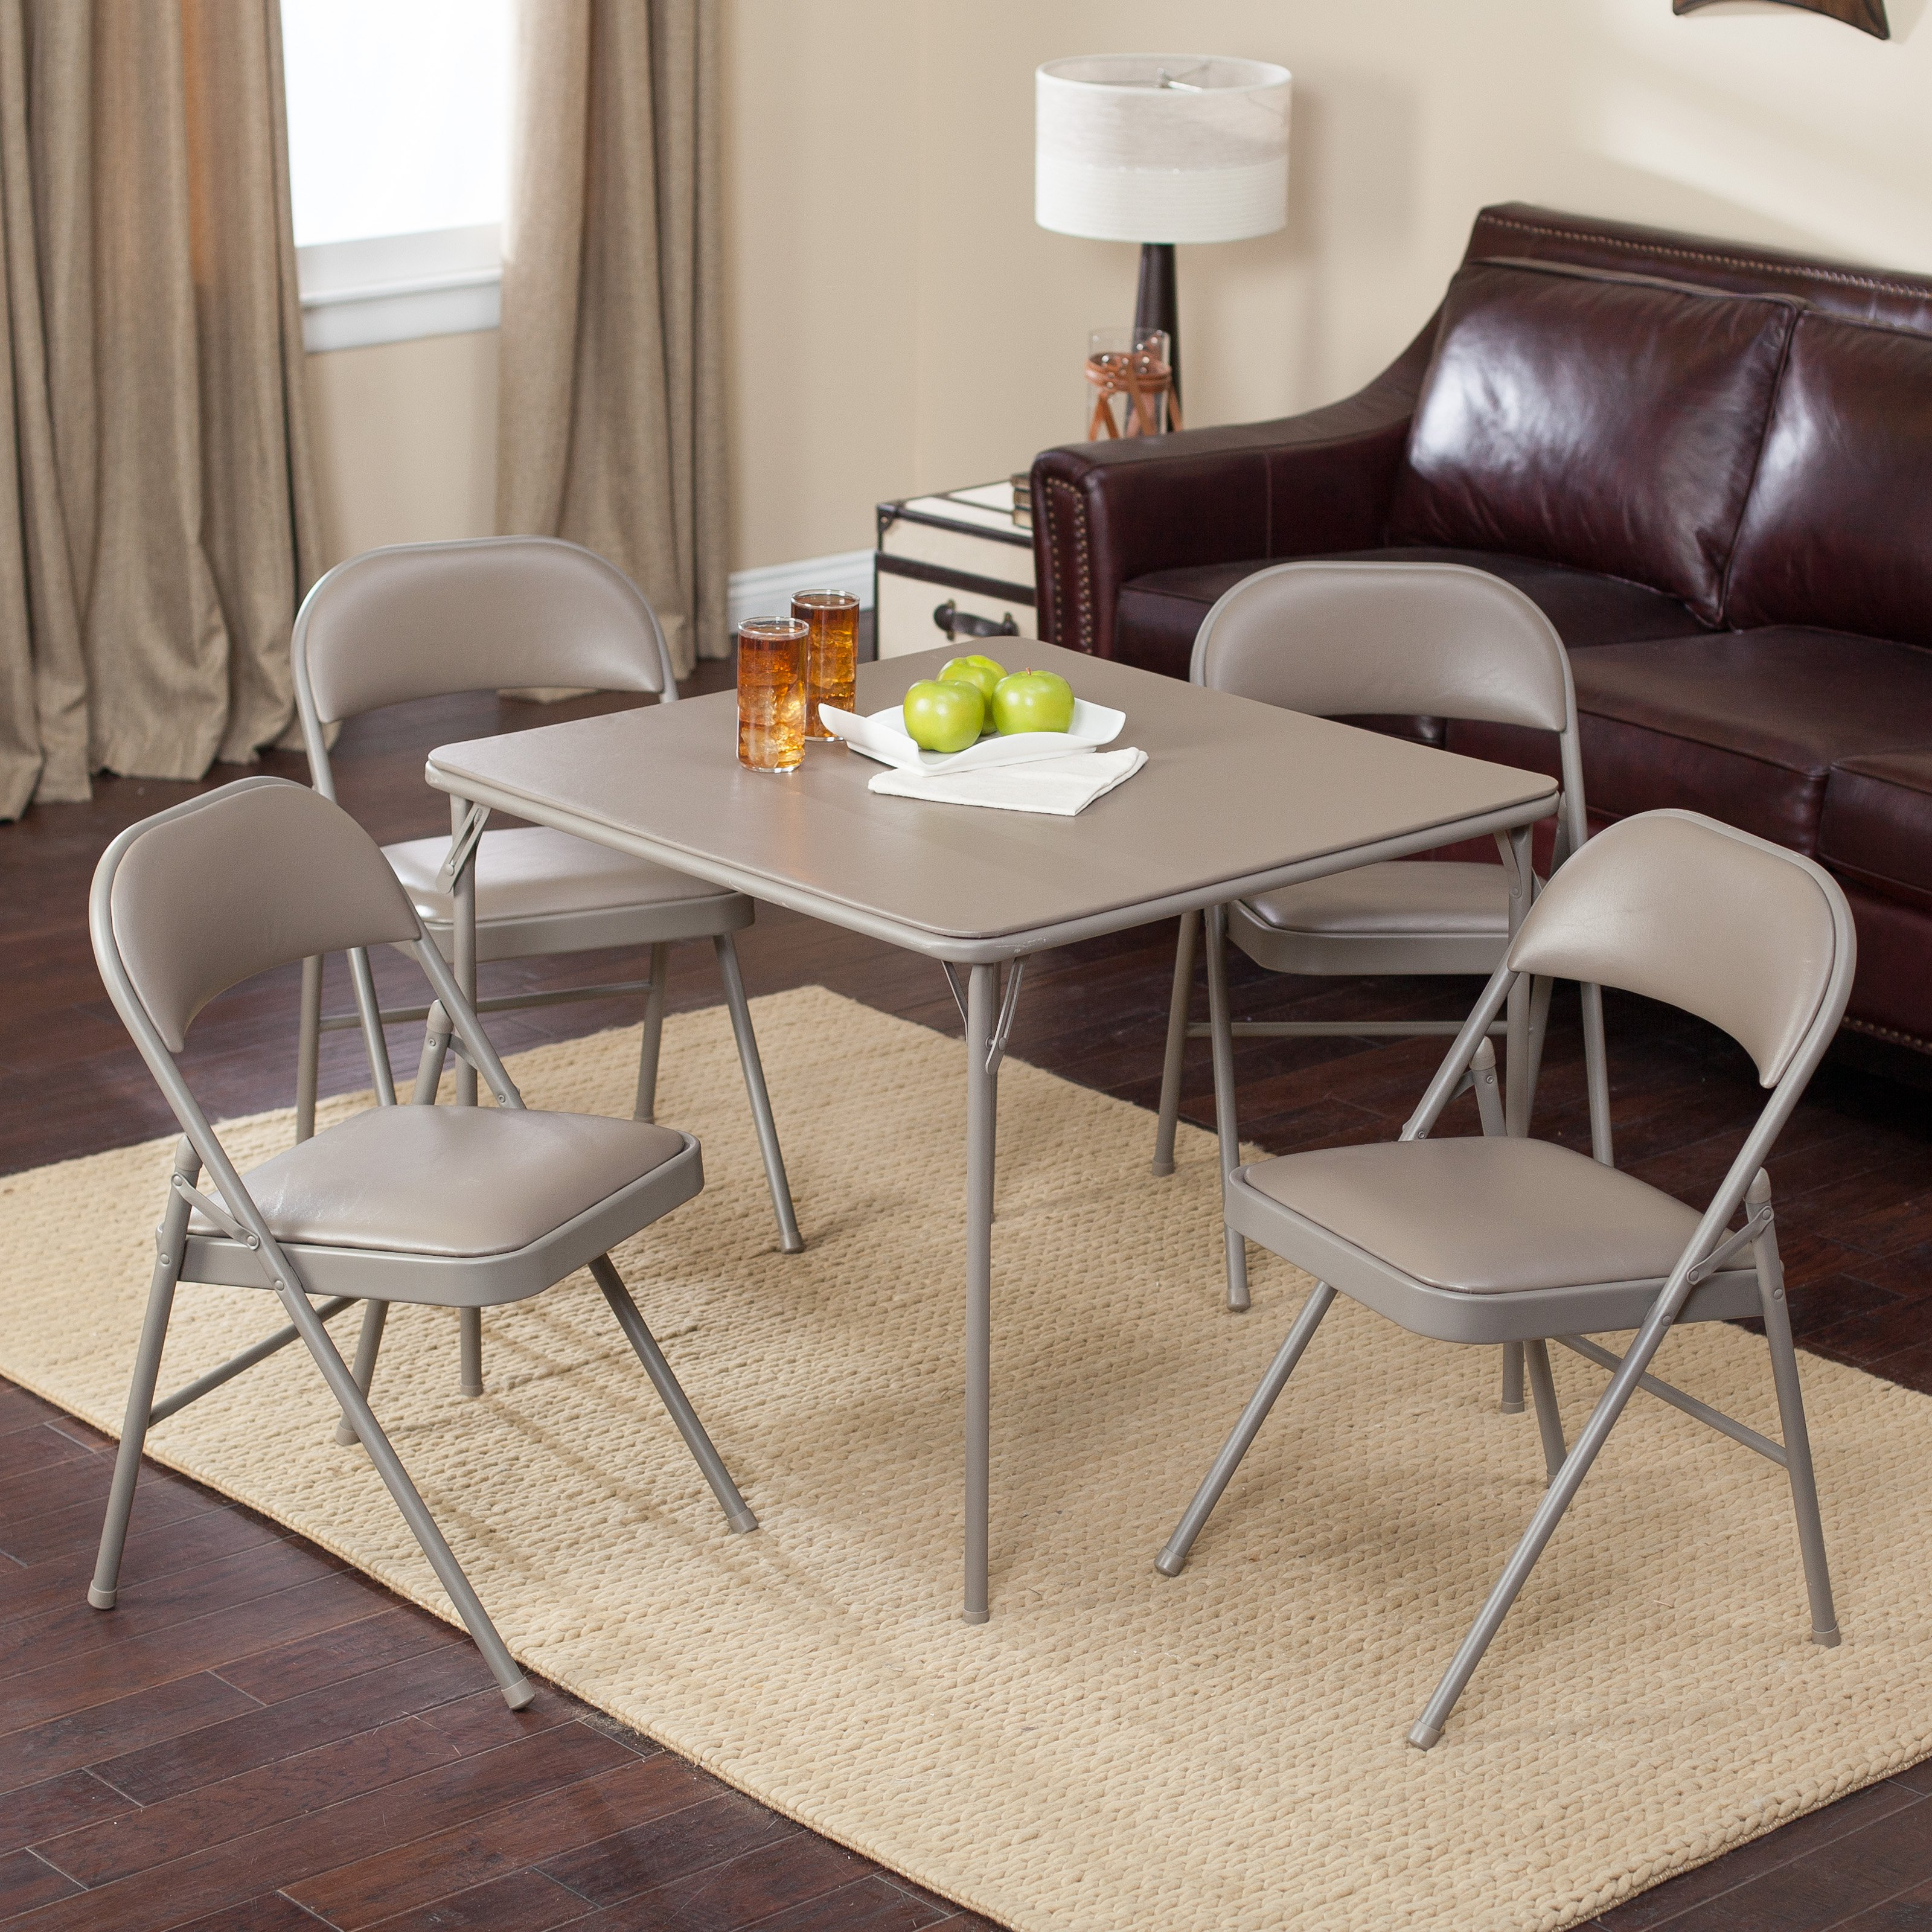 card table and chair set master:mec